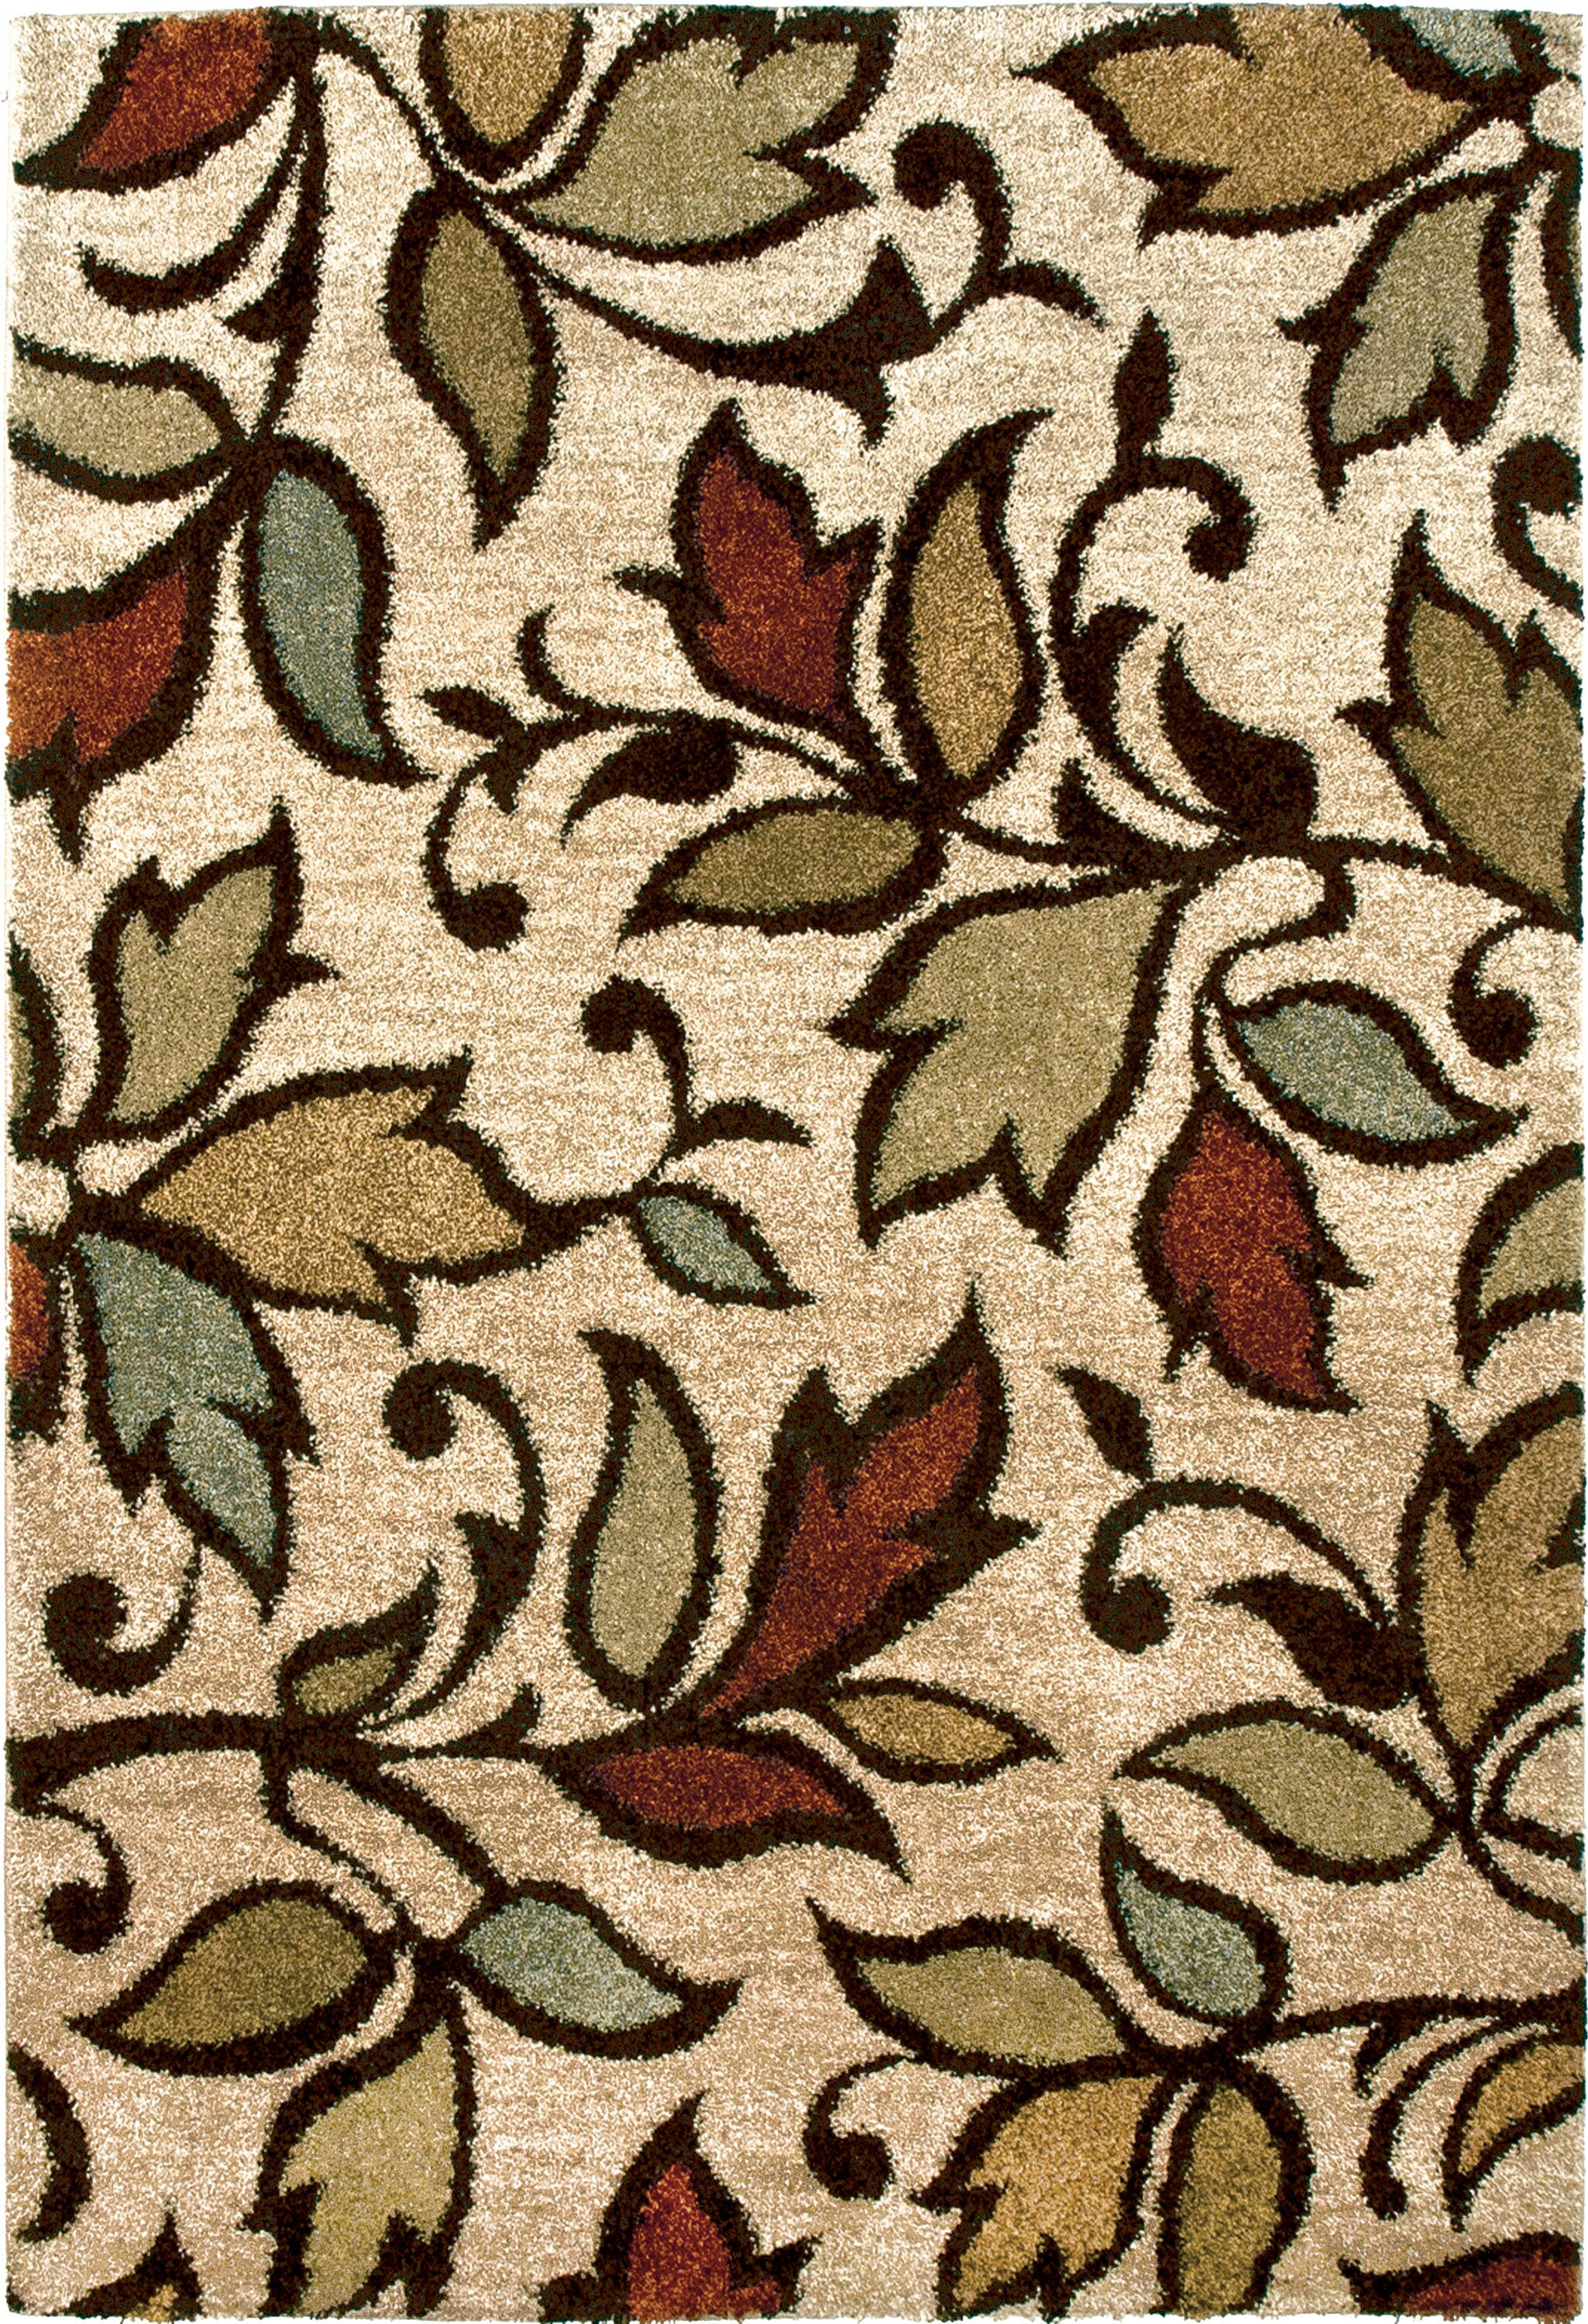 Vine Getty Bisque Beige/Brown Area Rug Rug Size: 5'3